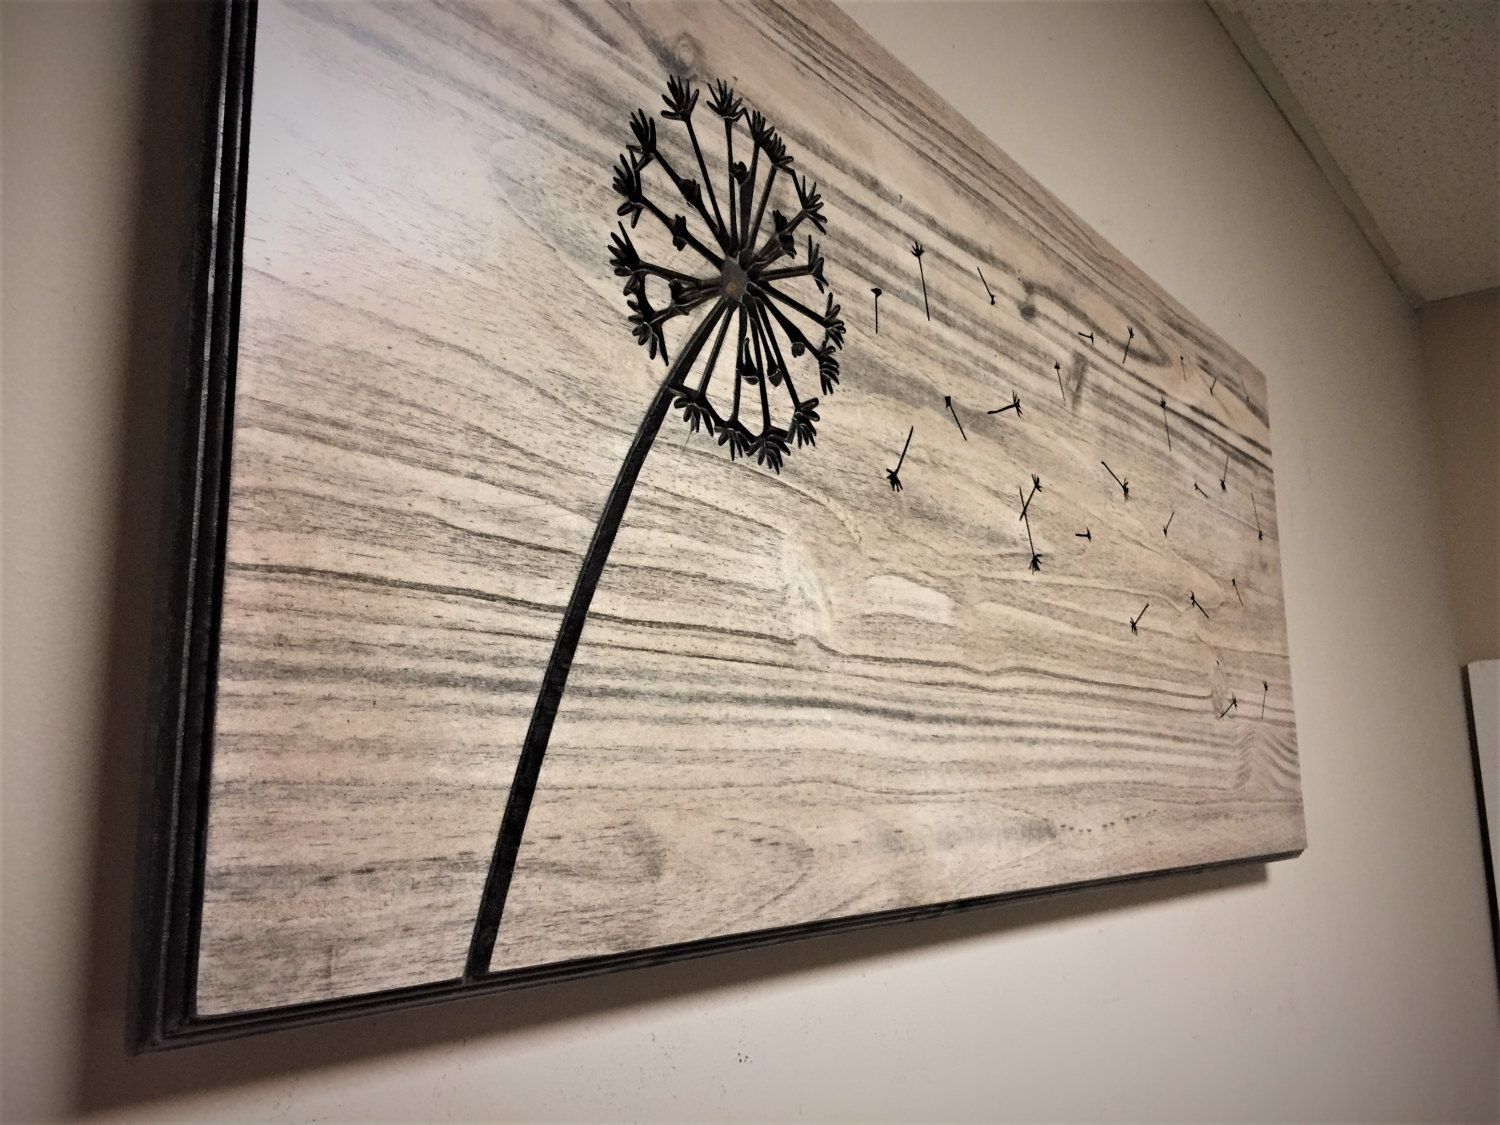 Dandelion Wall Art, Carved, Wood Wall Art, Home Decorhowdyowl On With Most Recent Dandelion Wall Art (View 9 of 20)